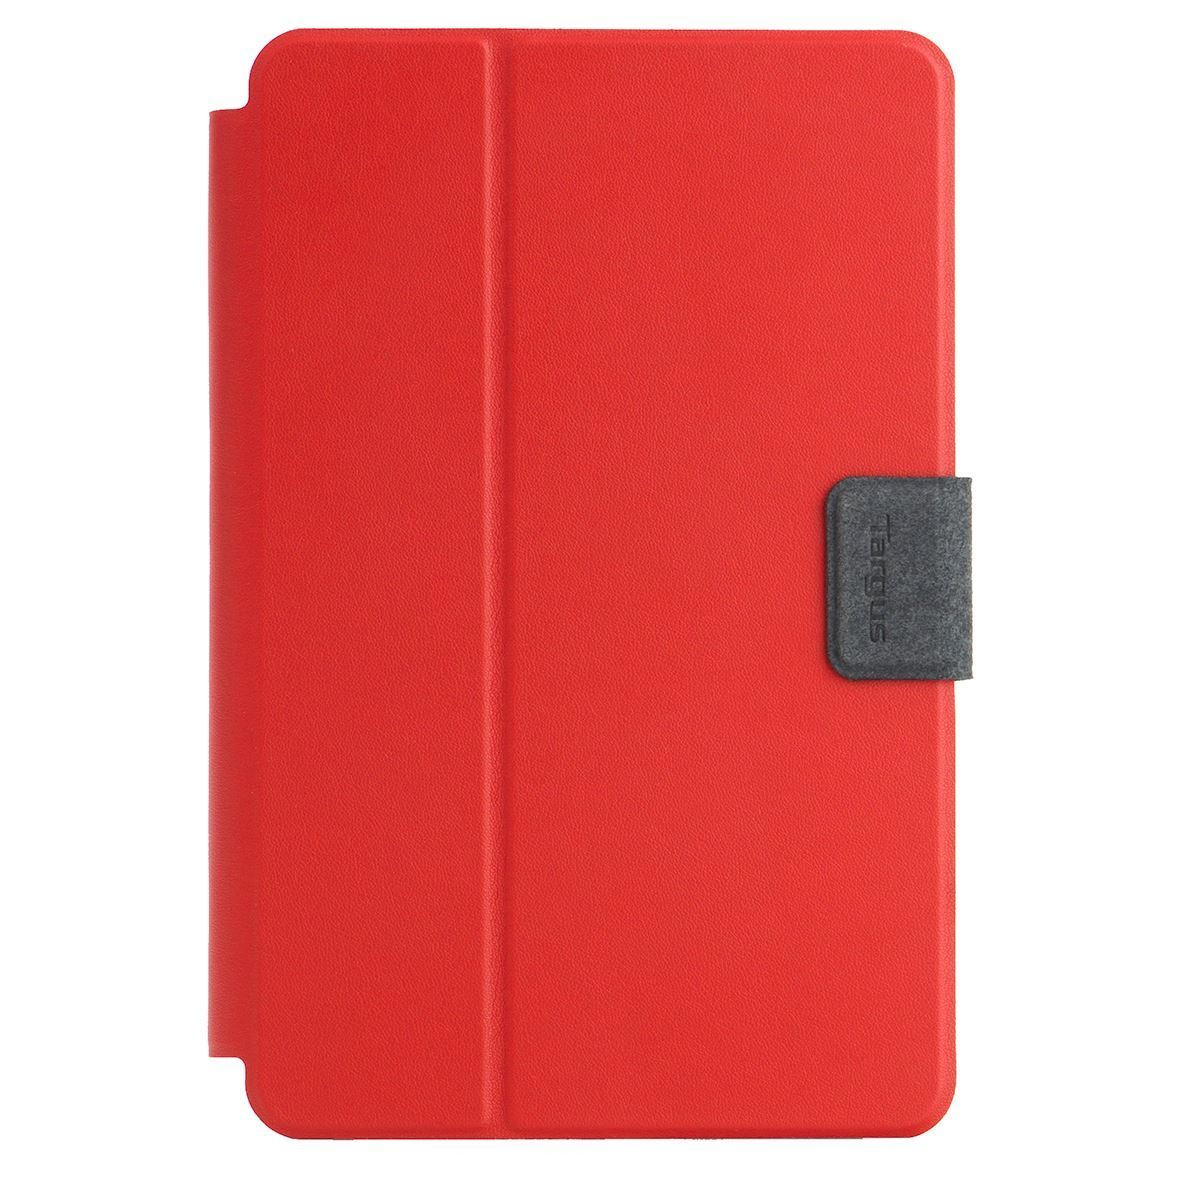 663799d3a9a9 SafeFit 7-8 inch Rotating Universal Tablet Case - Red